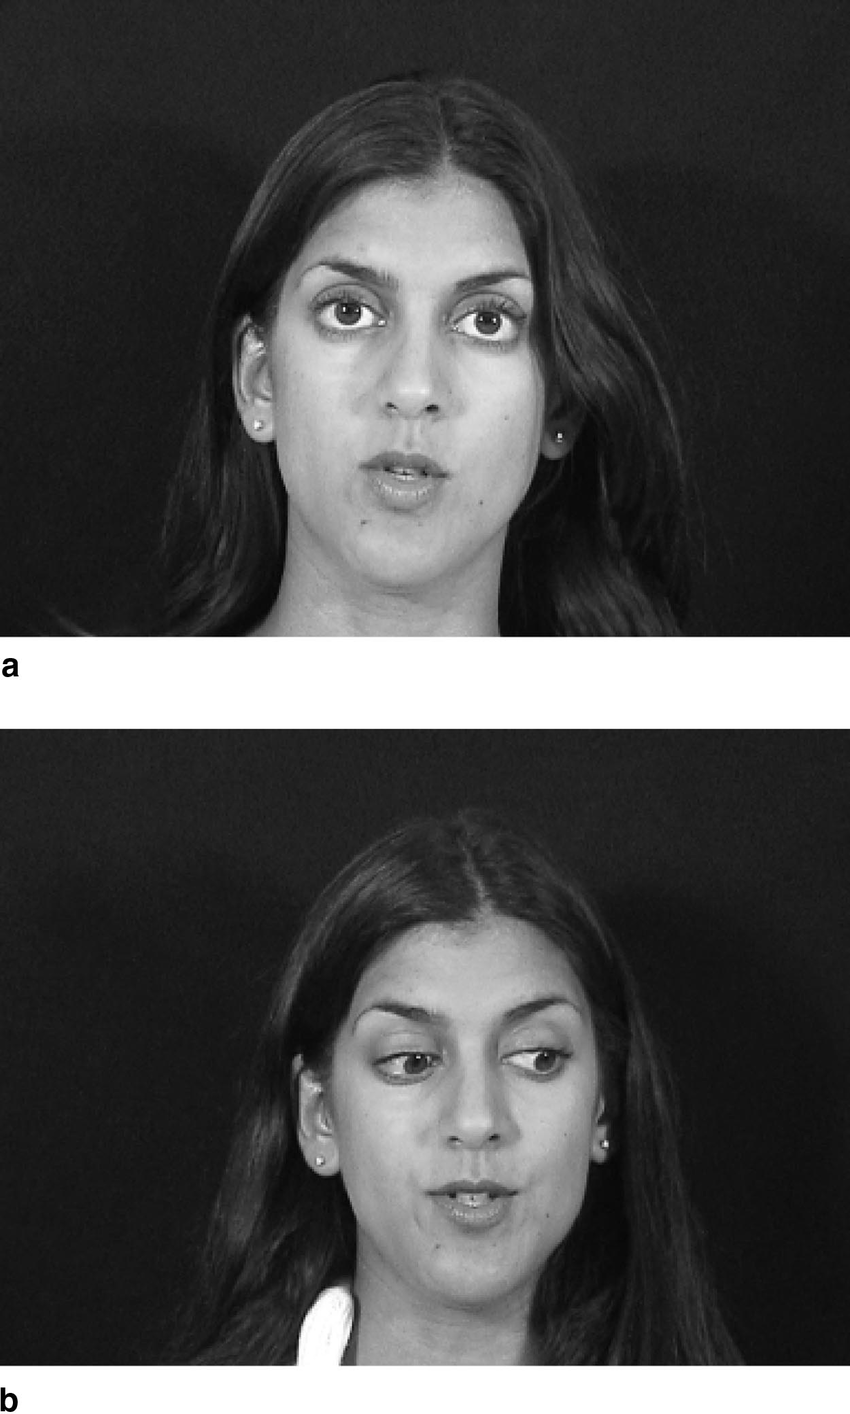 medium resolution of examples of the gaze cue in the eye contact a and gaze aversion